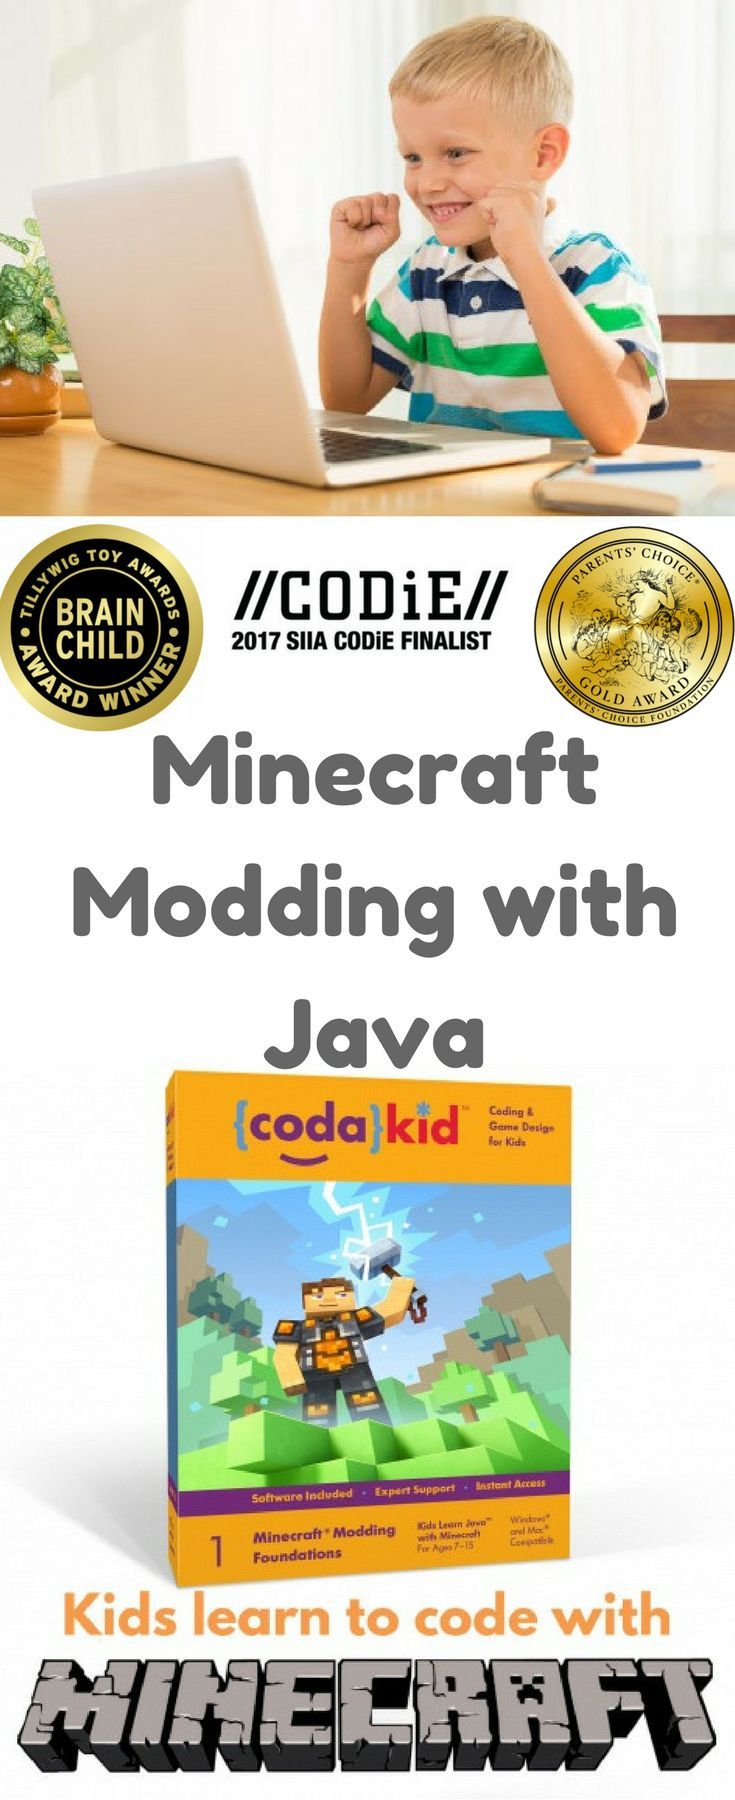 """Mod Creation: The Adventure Begins is an award-winning online Java programming course designed for ages 7 to 15. In this self-paced course, students will learn how to modify or """"mod"""" the source code of Minecraft while mastering coding concepts. Students create custom tools, armor, blocks, ores, biomes, and other creations. Teaches kids how to code independently using real coding languages and professional programming tools. #homeschool #ad"""